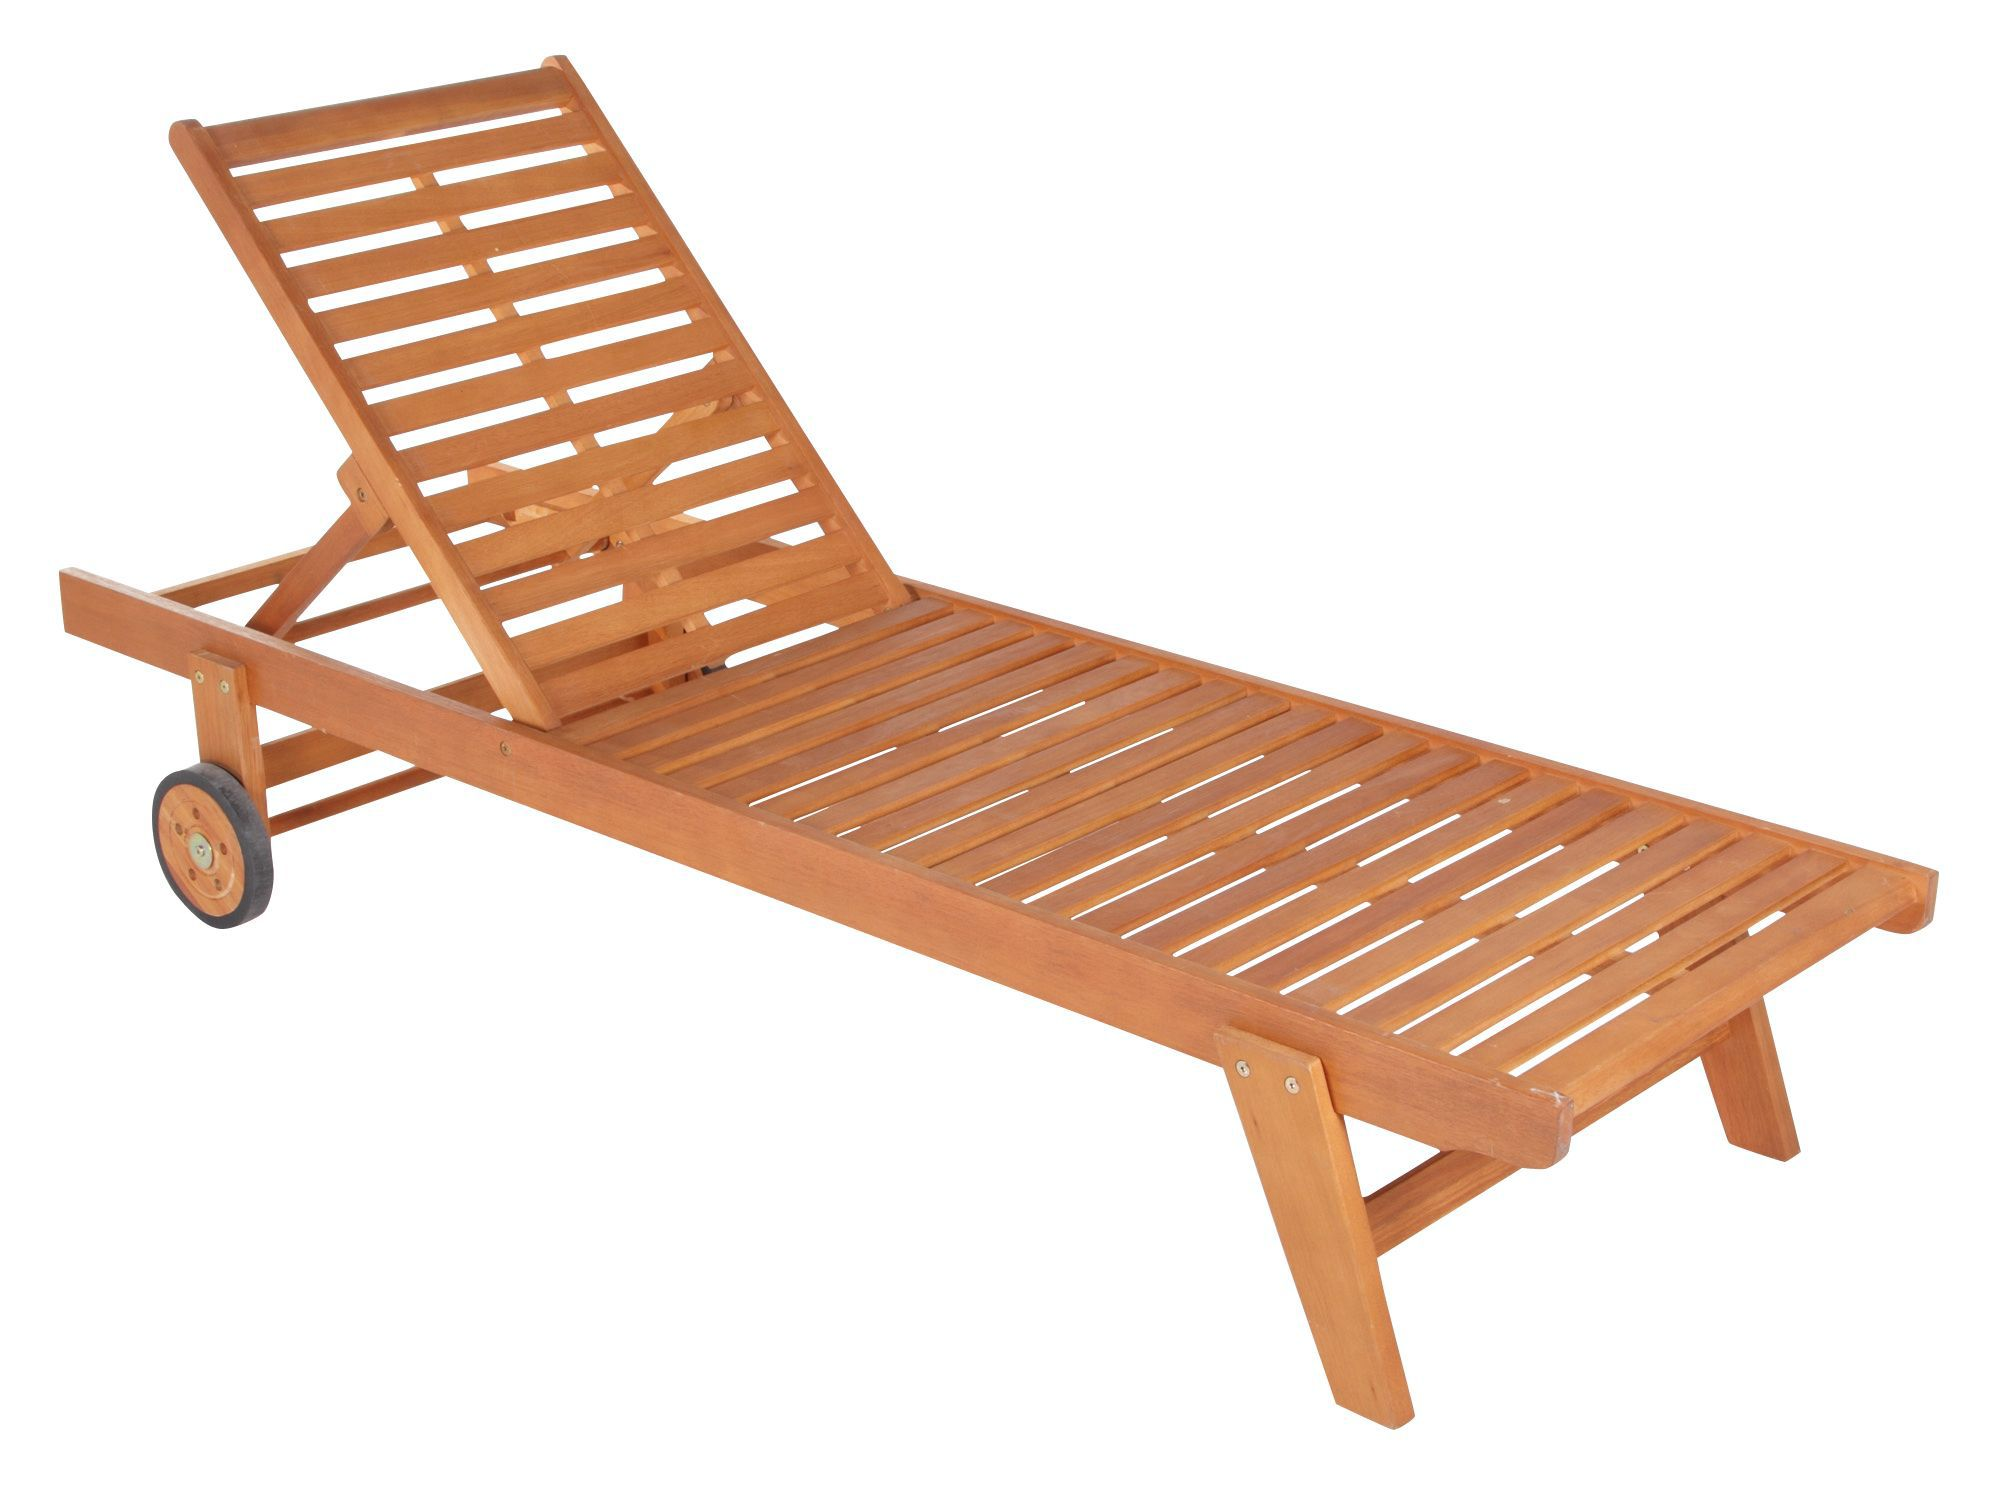 aland wooden sunlounger departments diy at b q. Black Bedroom Furniture Sets. Home Design Ideas